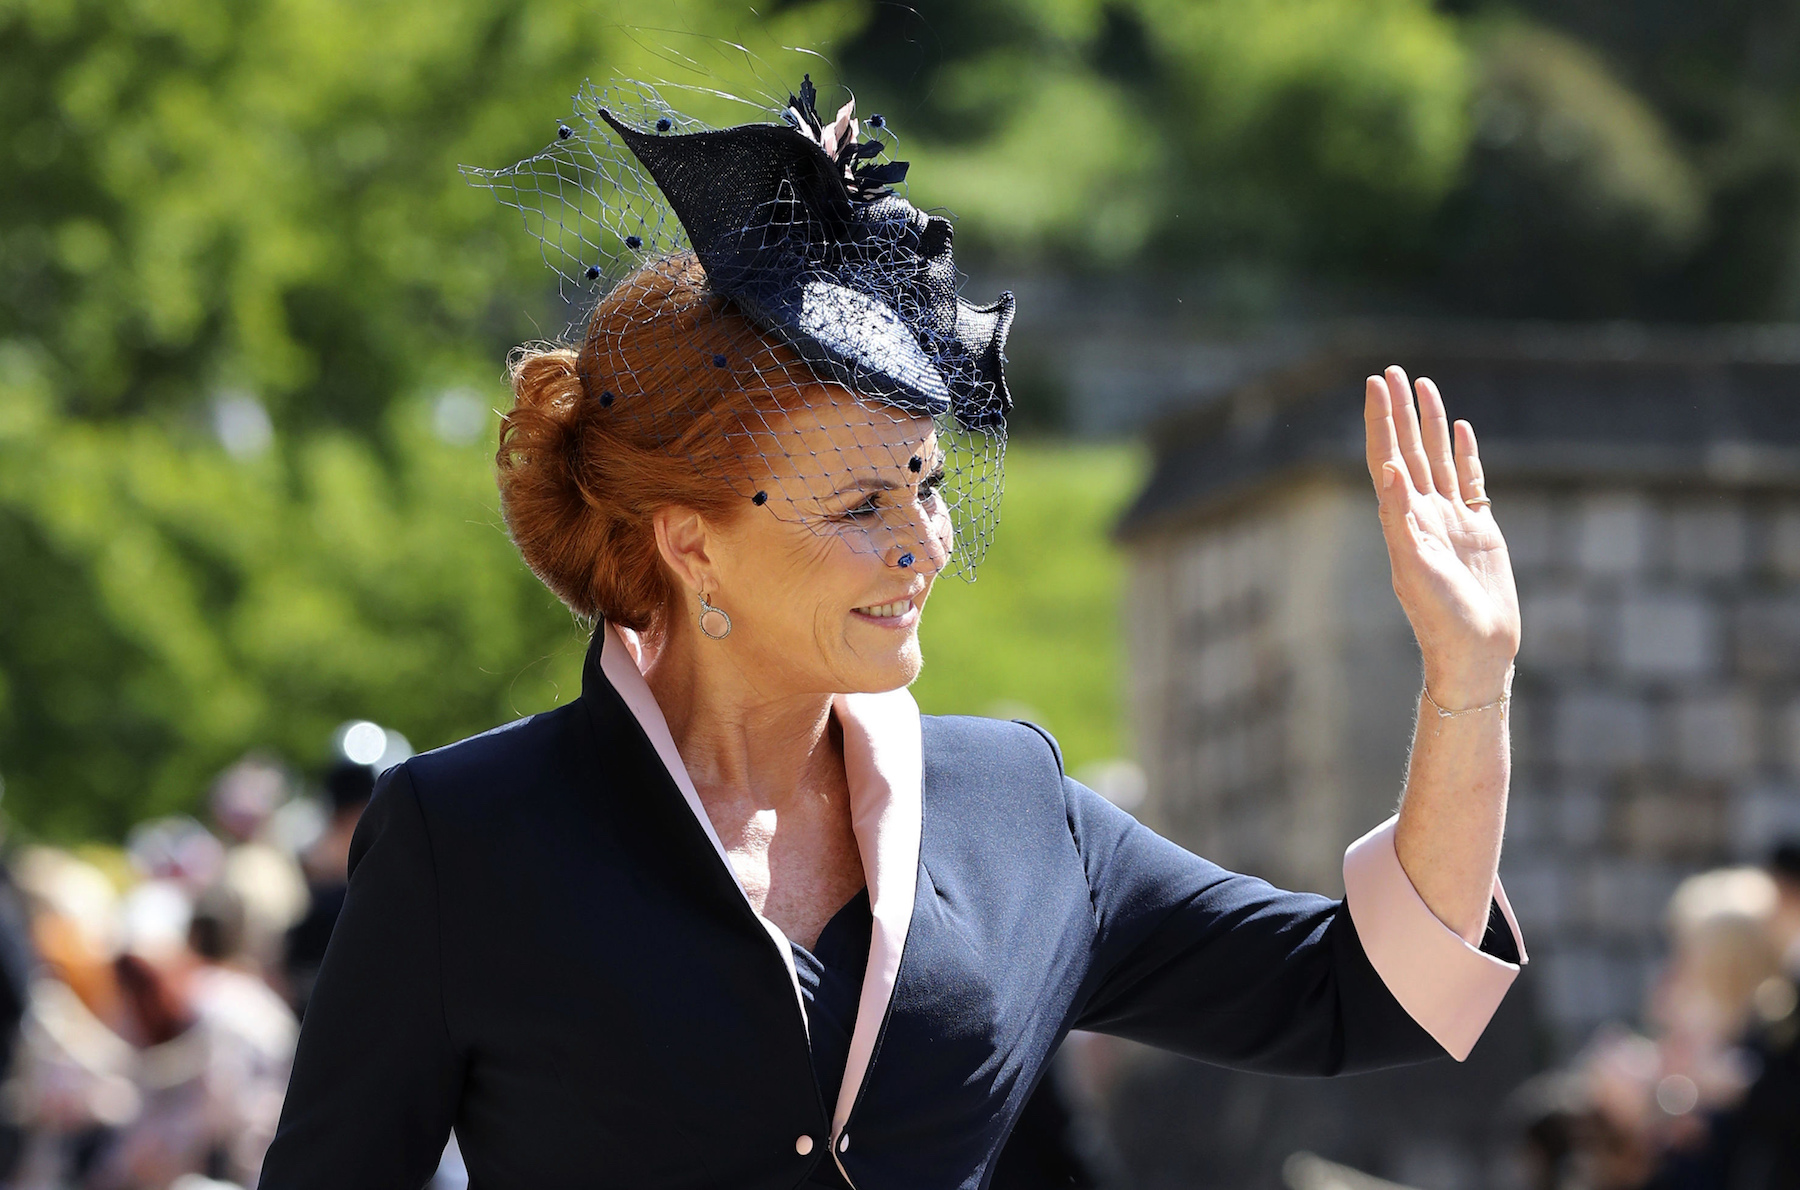 <div class='meta'><div class='origin-logo' data-origin='AP'></div><span class='caption-text' data-credit='Gareth Fuller/PA Wire'>The Duchess of York arrives at St George's Chapel at Windsor Castle for the wedding of Meghan Markle and Prince Harry.</span></div>